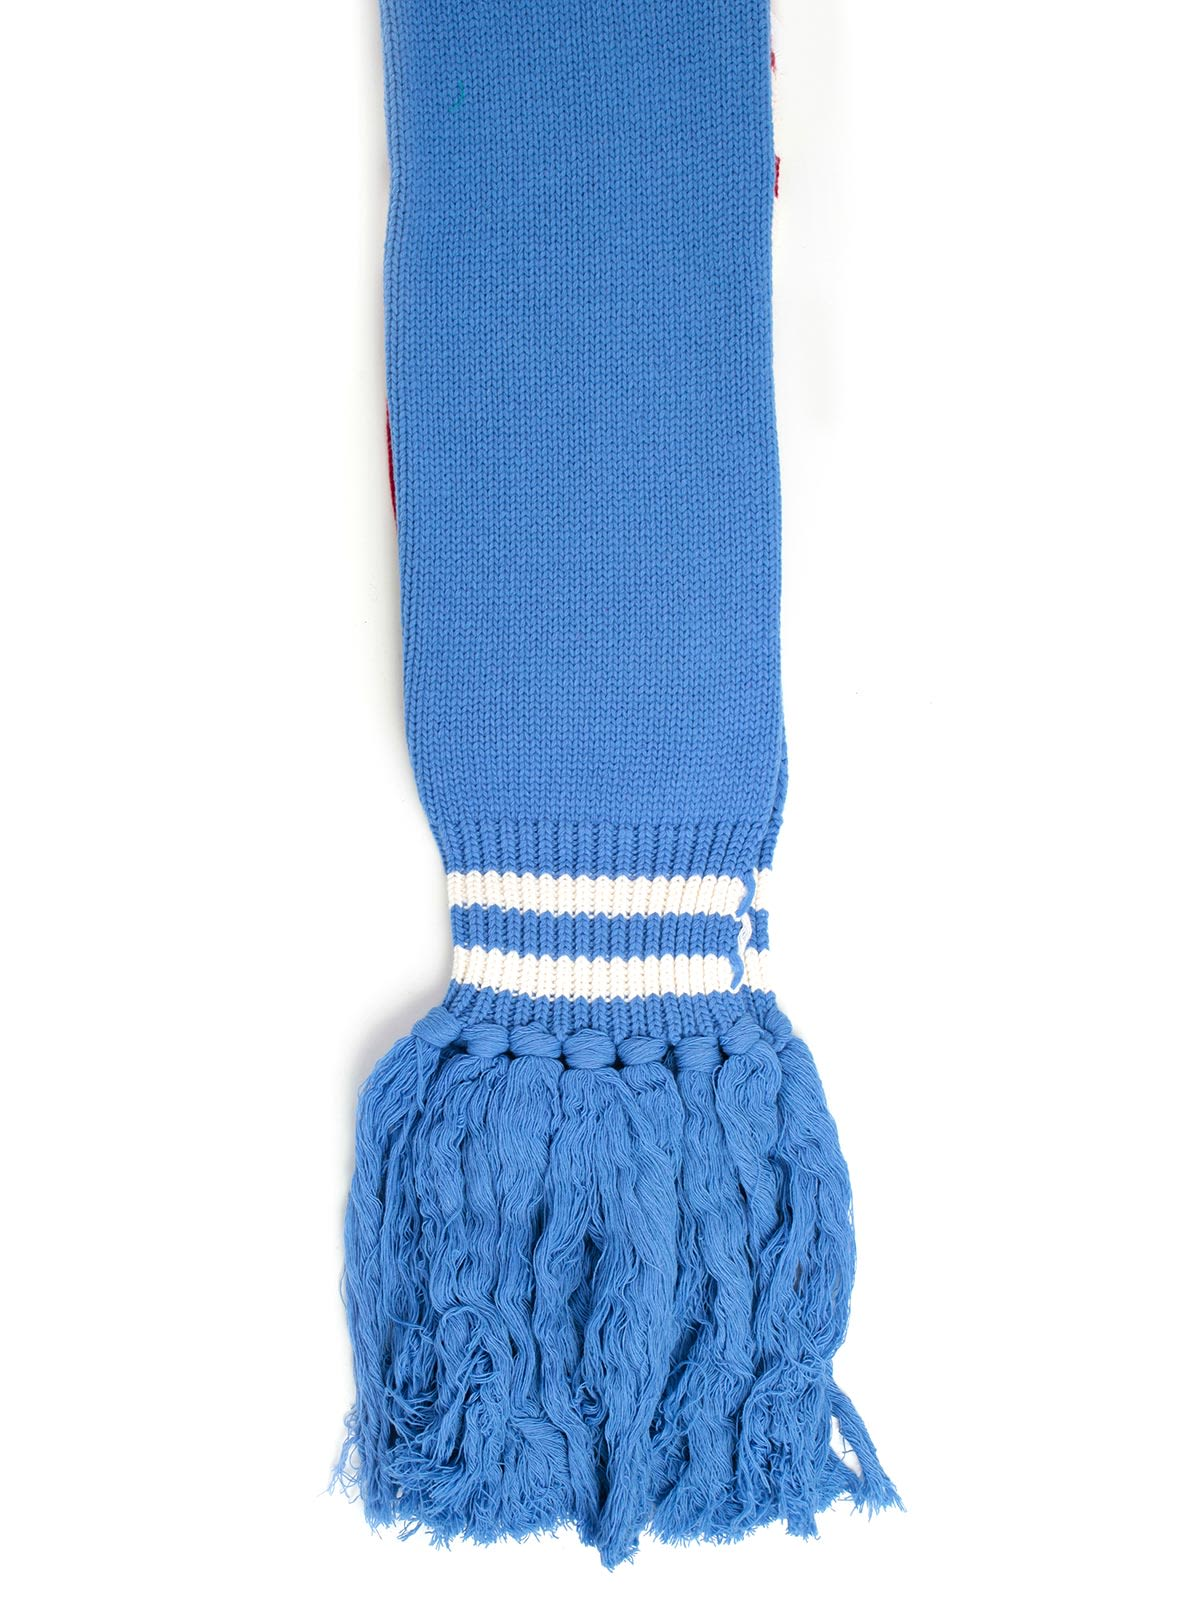 DANILO PAURA Fringed Scarf in Light Blue Red